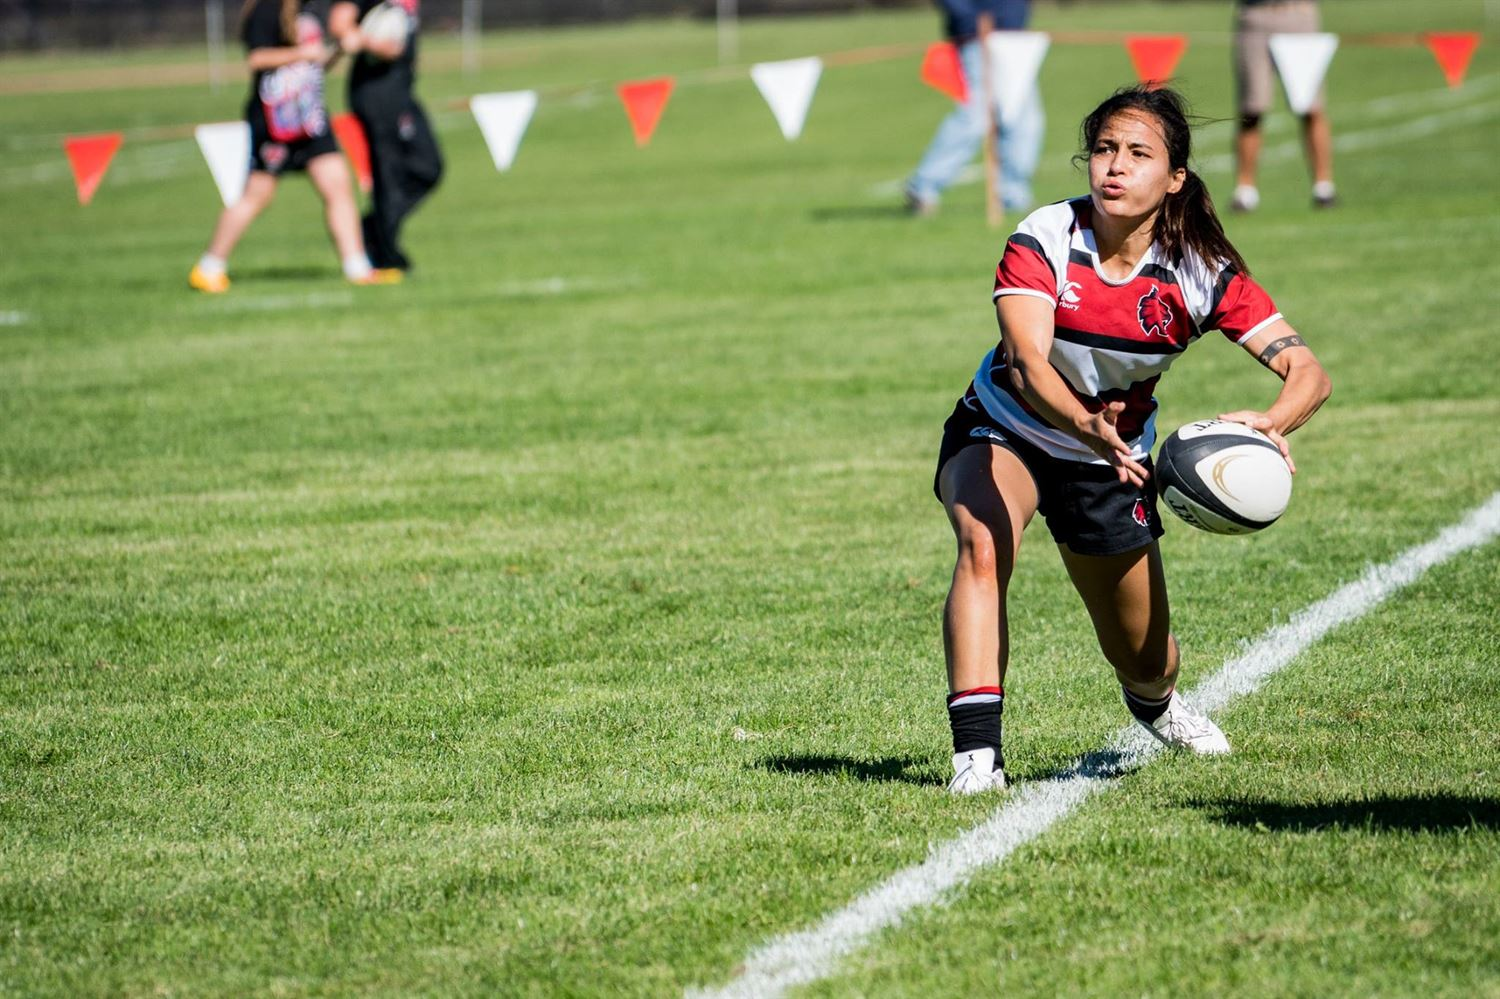 Central Washington University - Womens' Rugby